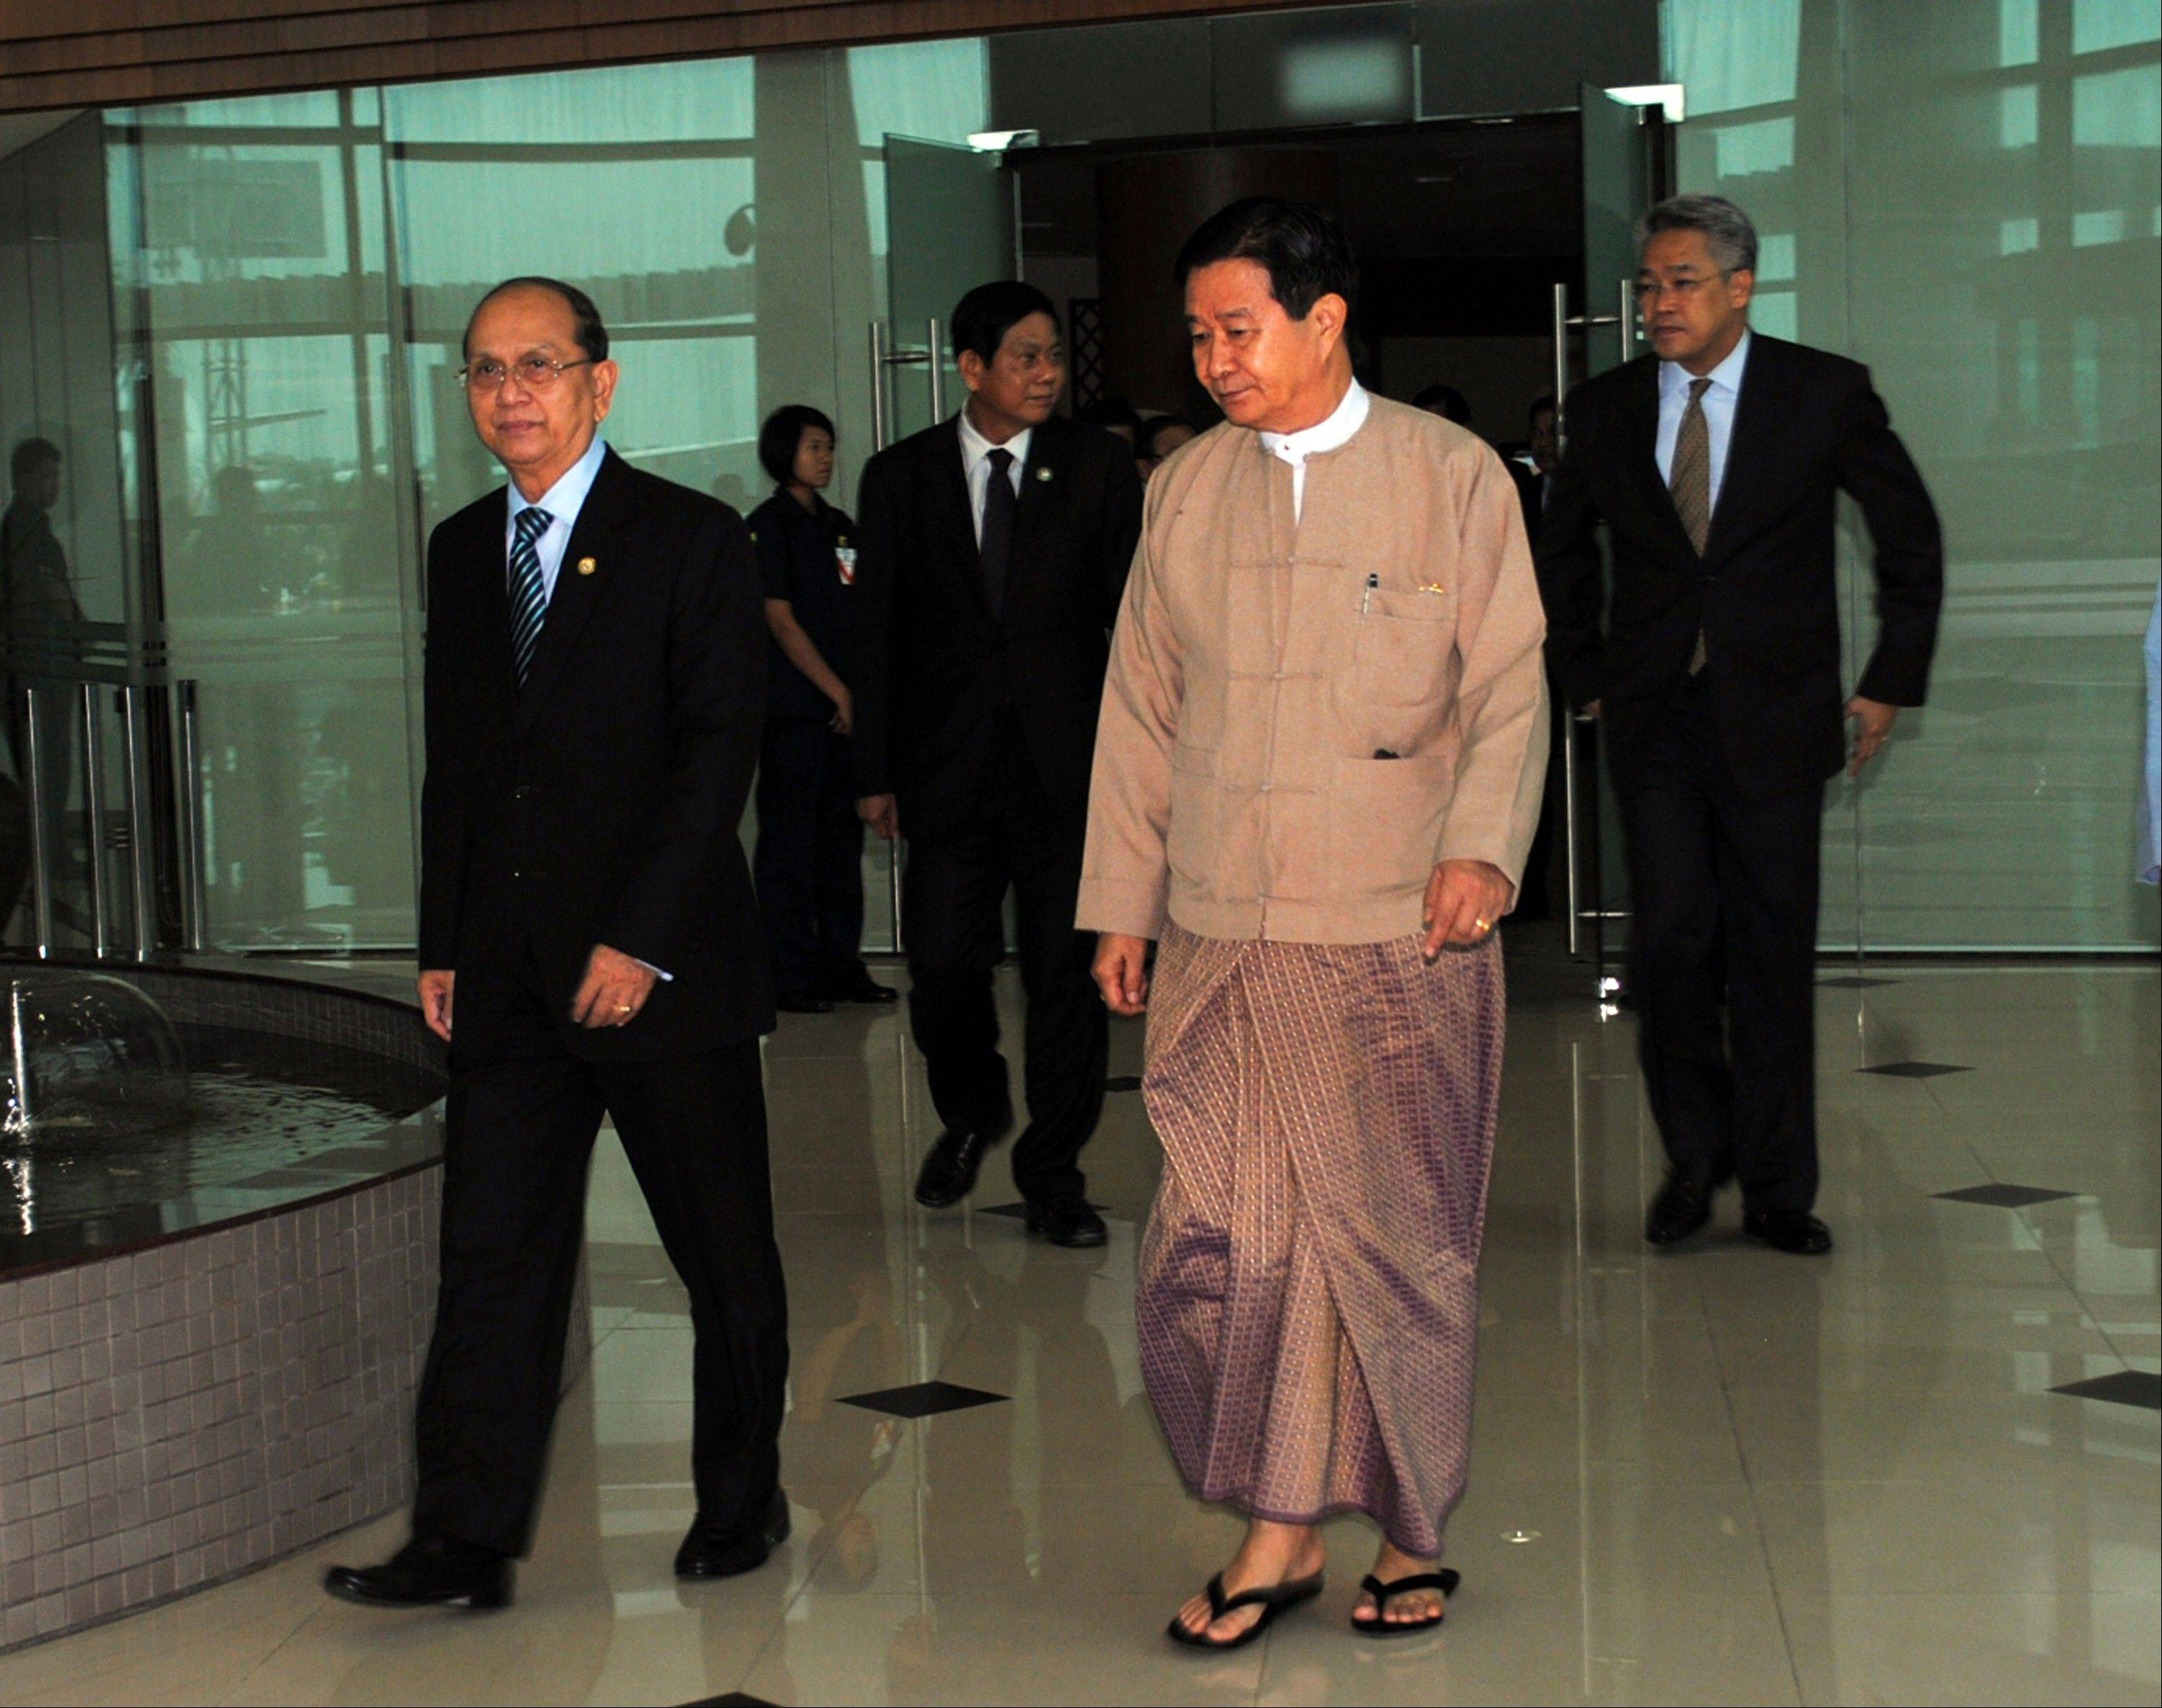 Associated PressMyanmar President Thein Sein, left, arrives at Yangon International Airport in Yangon, Myanmar as he returns from a European tour, Saturday, July 20. Myanmar's president on Saturday lifted a state of emergency in the central part of the country put in place after Buddhist-led mobs went on a rampage, killing dozens of Muslims and burning down their shops and homes. Many of the victims were teachers and teenage students from an Islamic school.